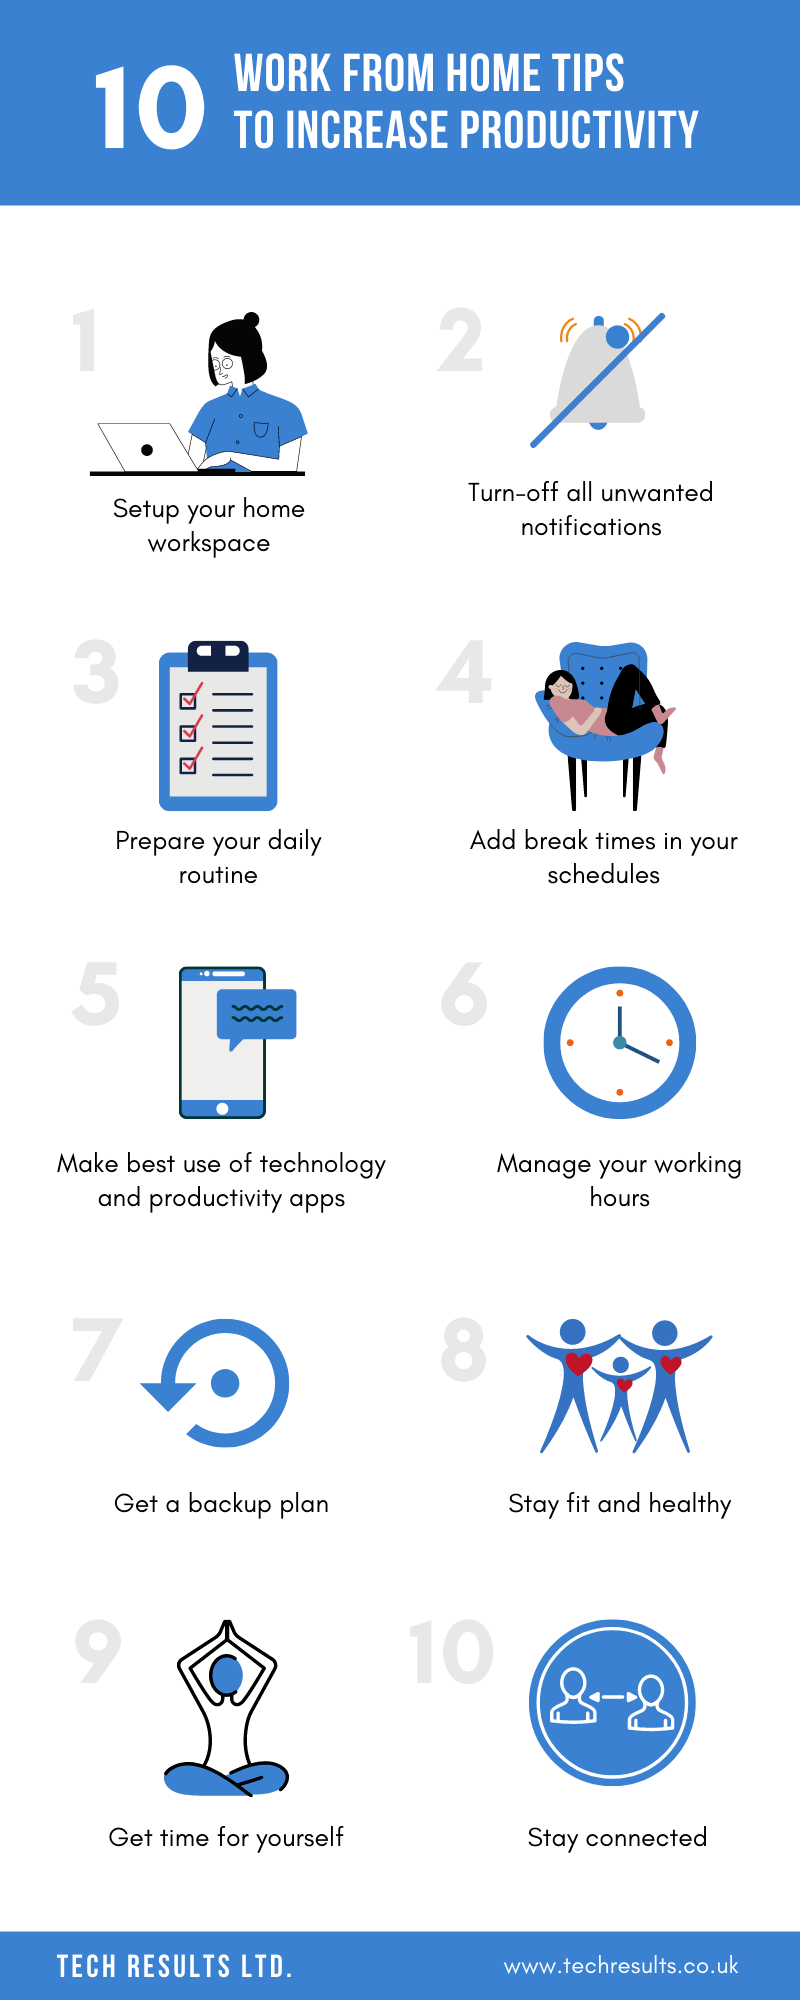 10 Work From Home Tips To Increase Productivity